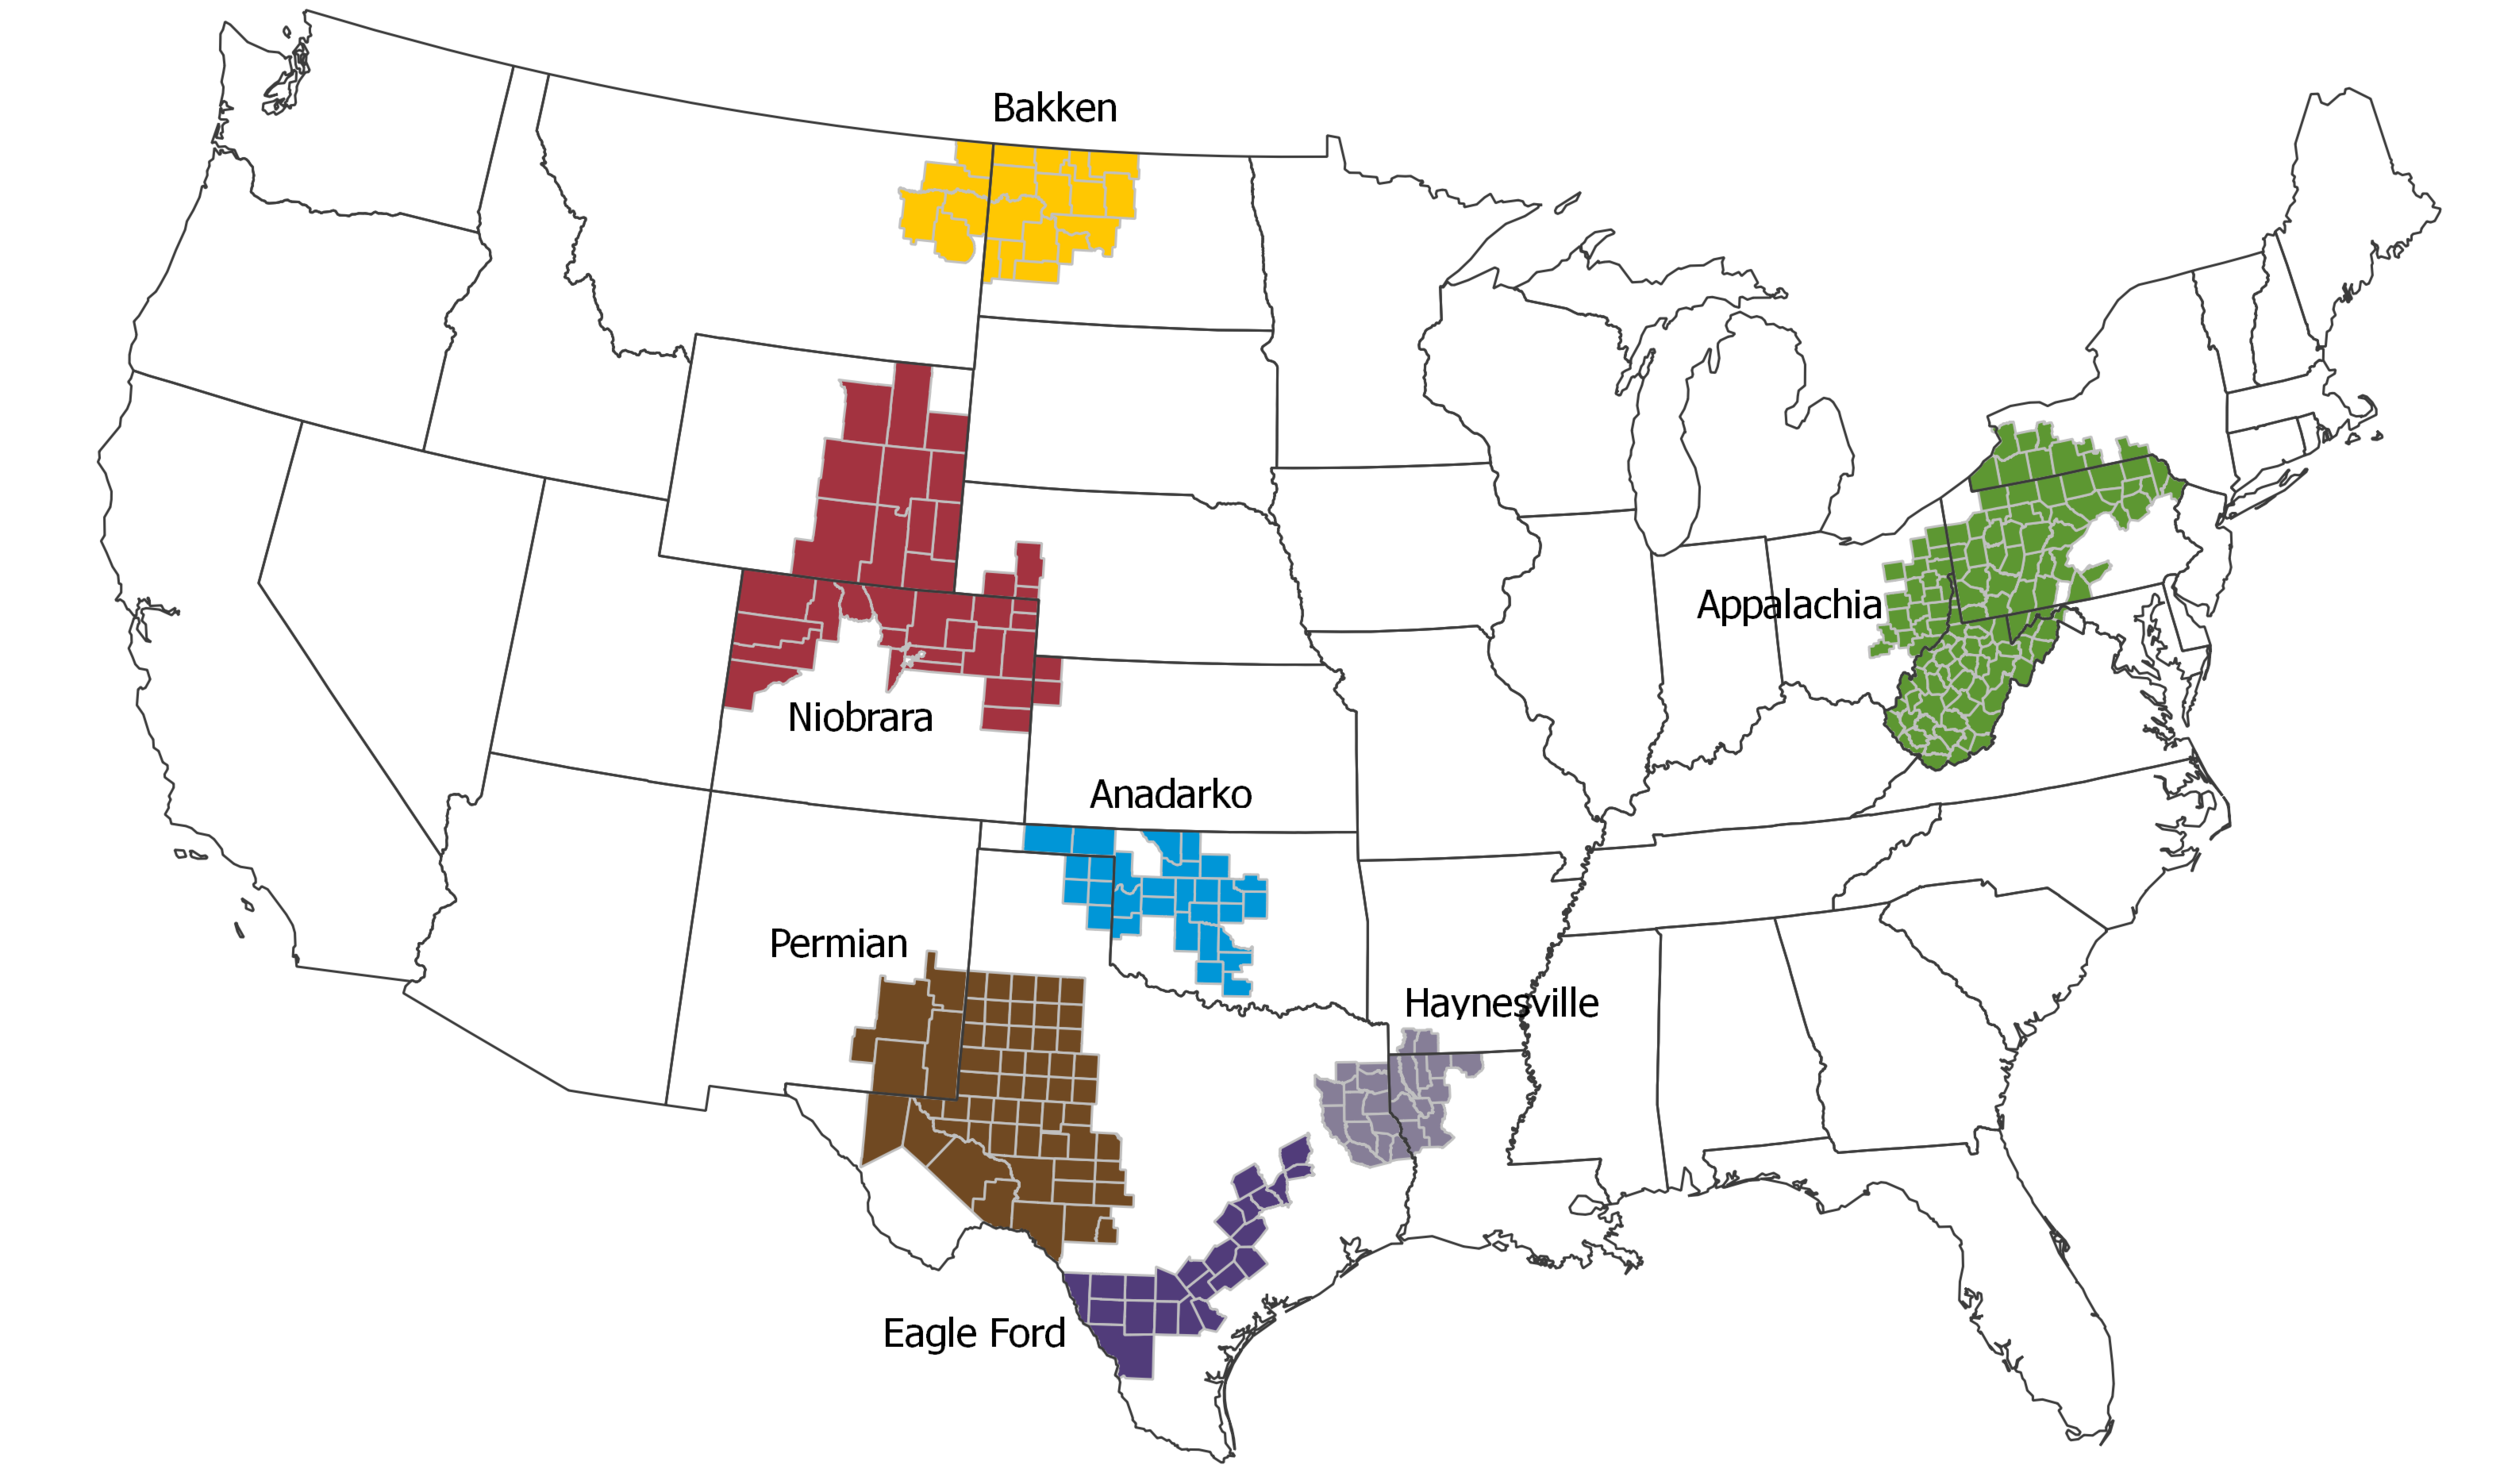 U.S. shale oil and gas regions, source: U.S. Energy Information Administration